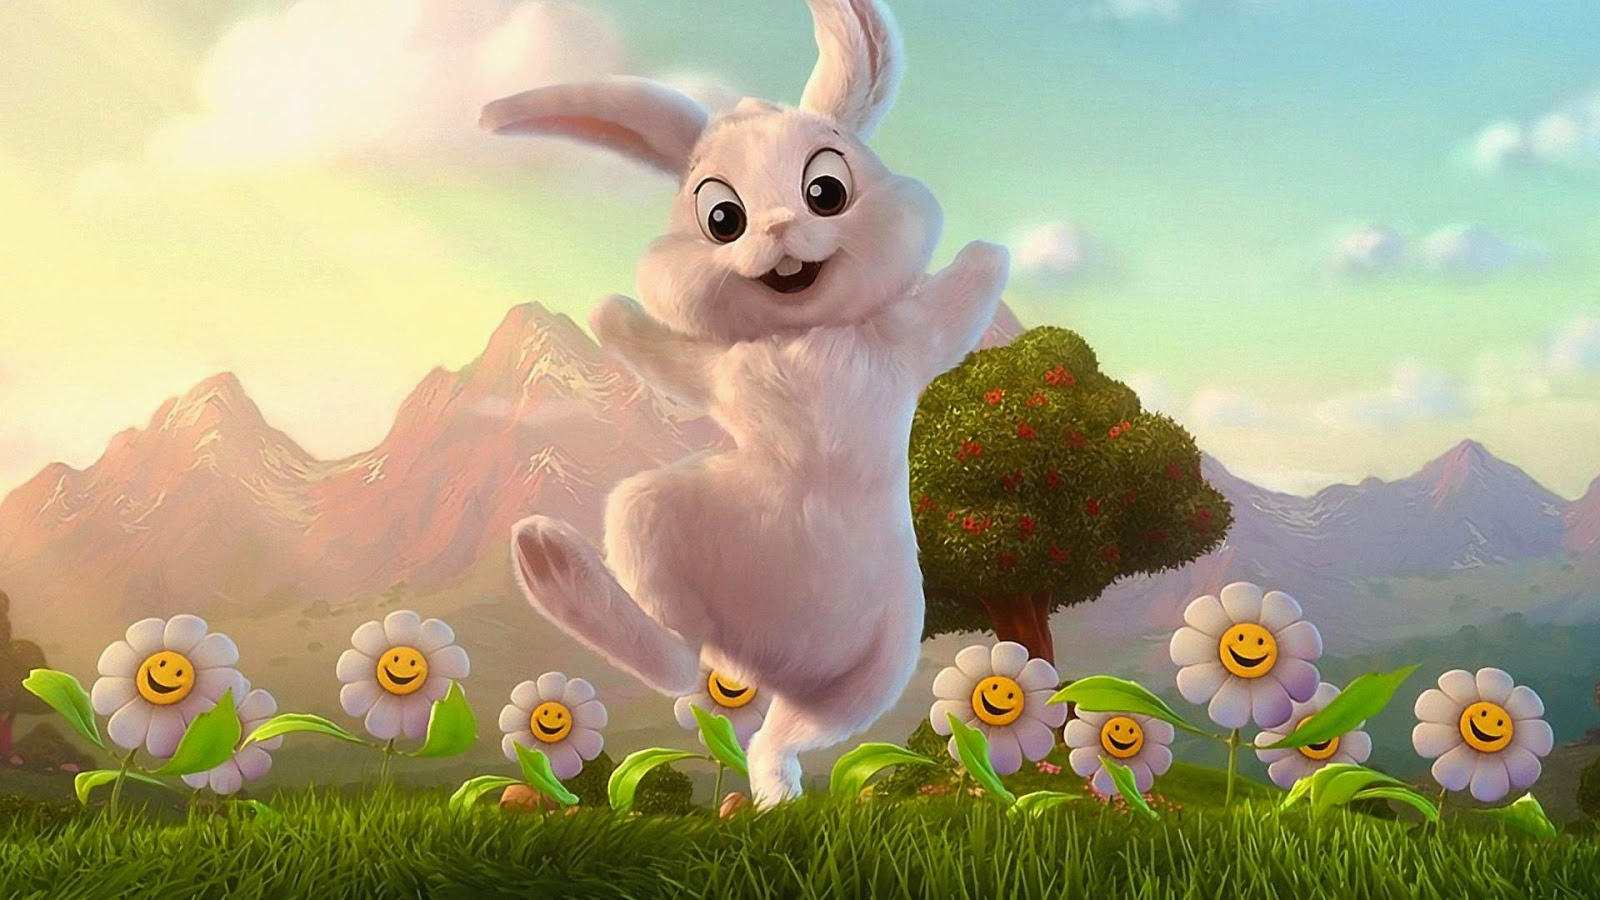 Funny Easter Bunny Wallpaper Cartoon Wallpapers 1600x900